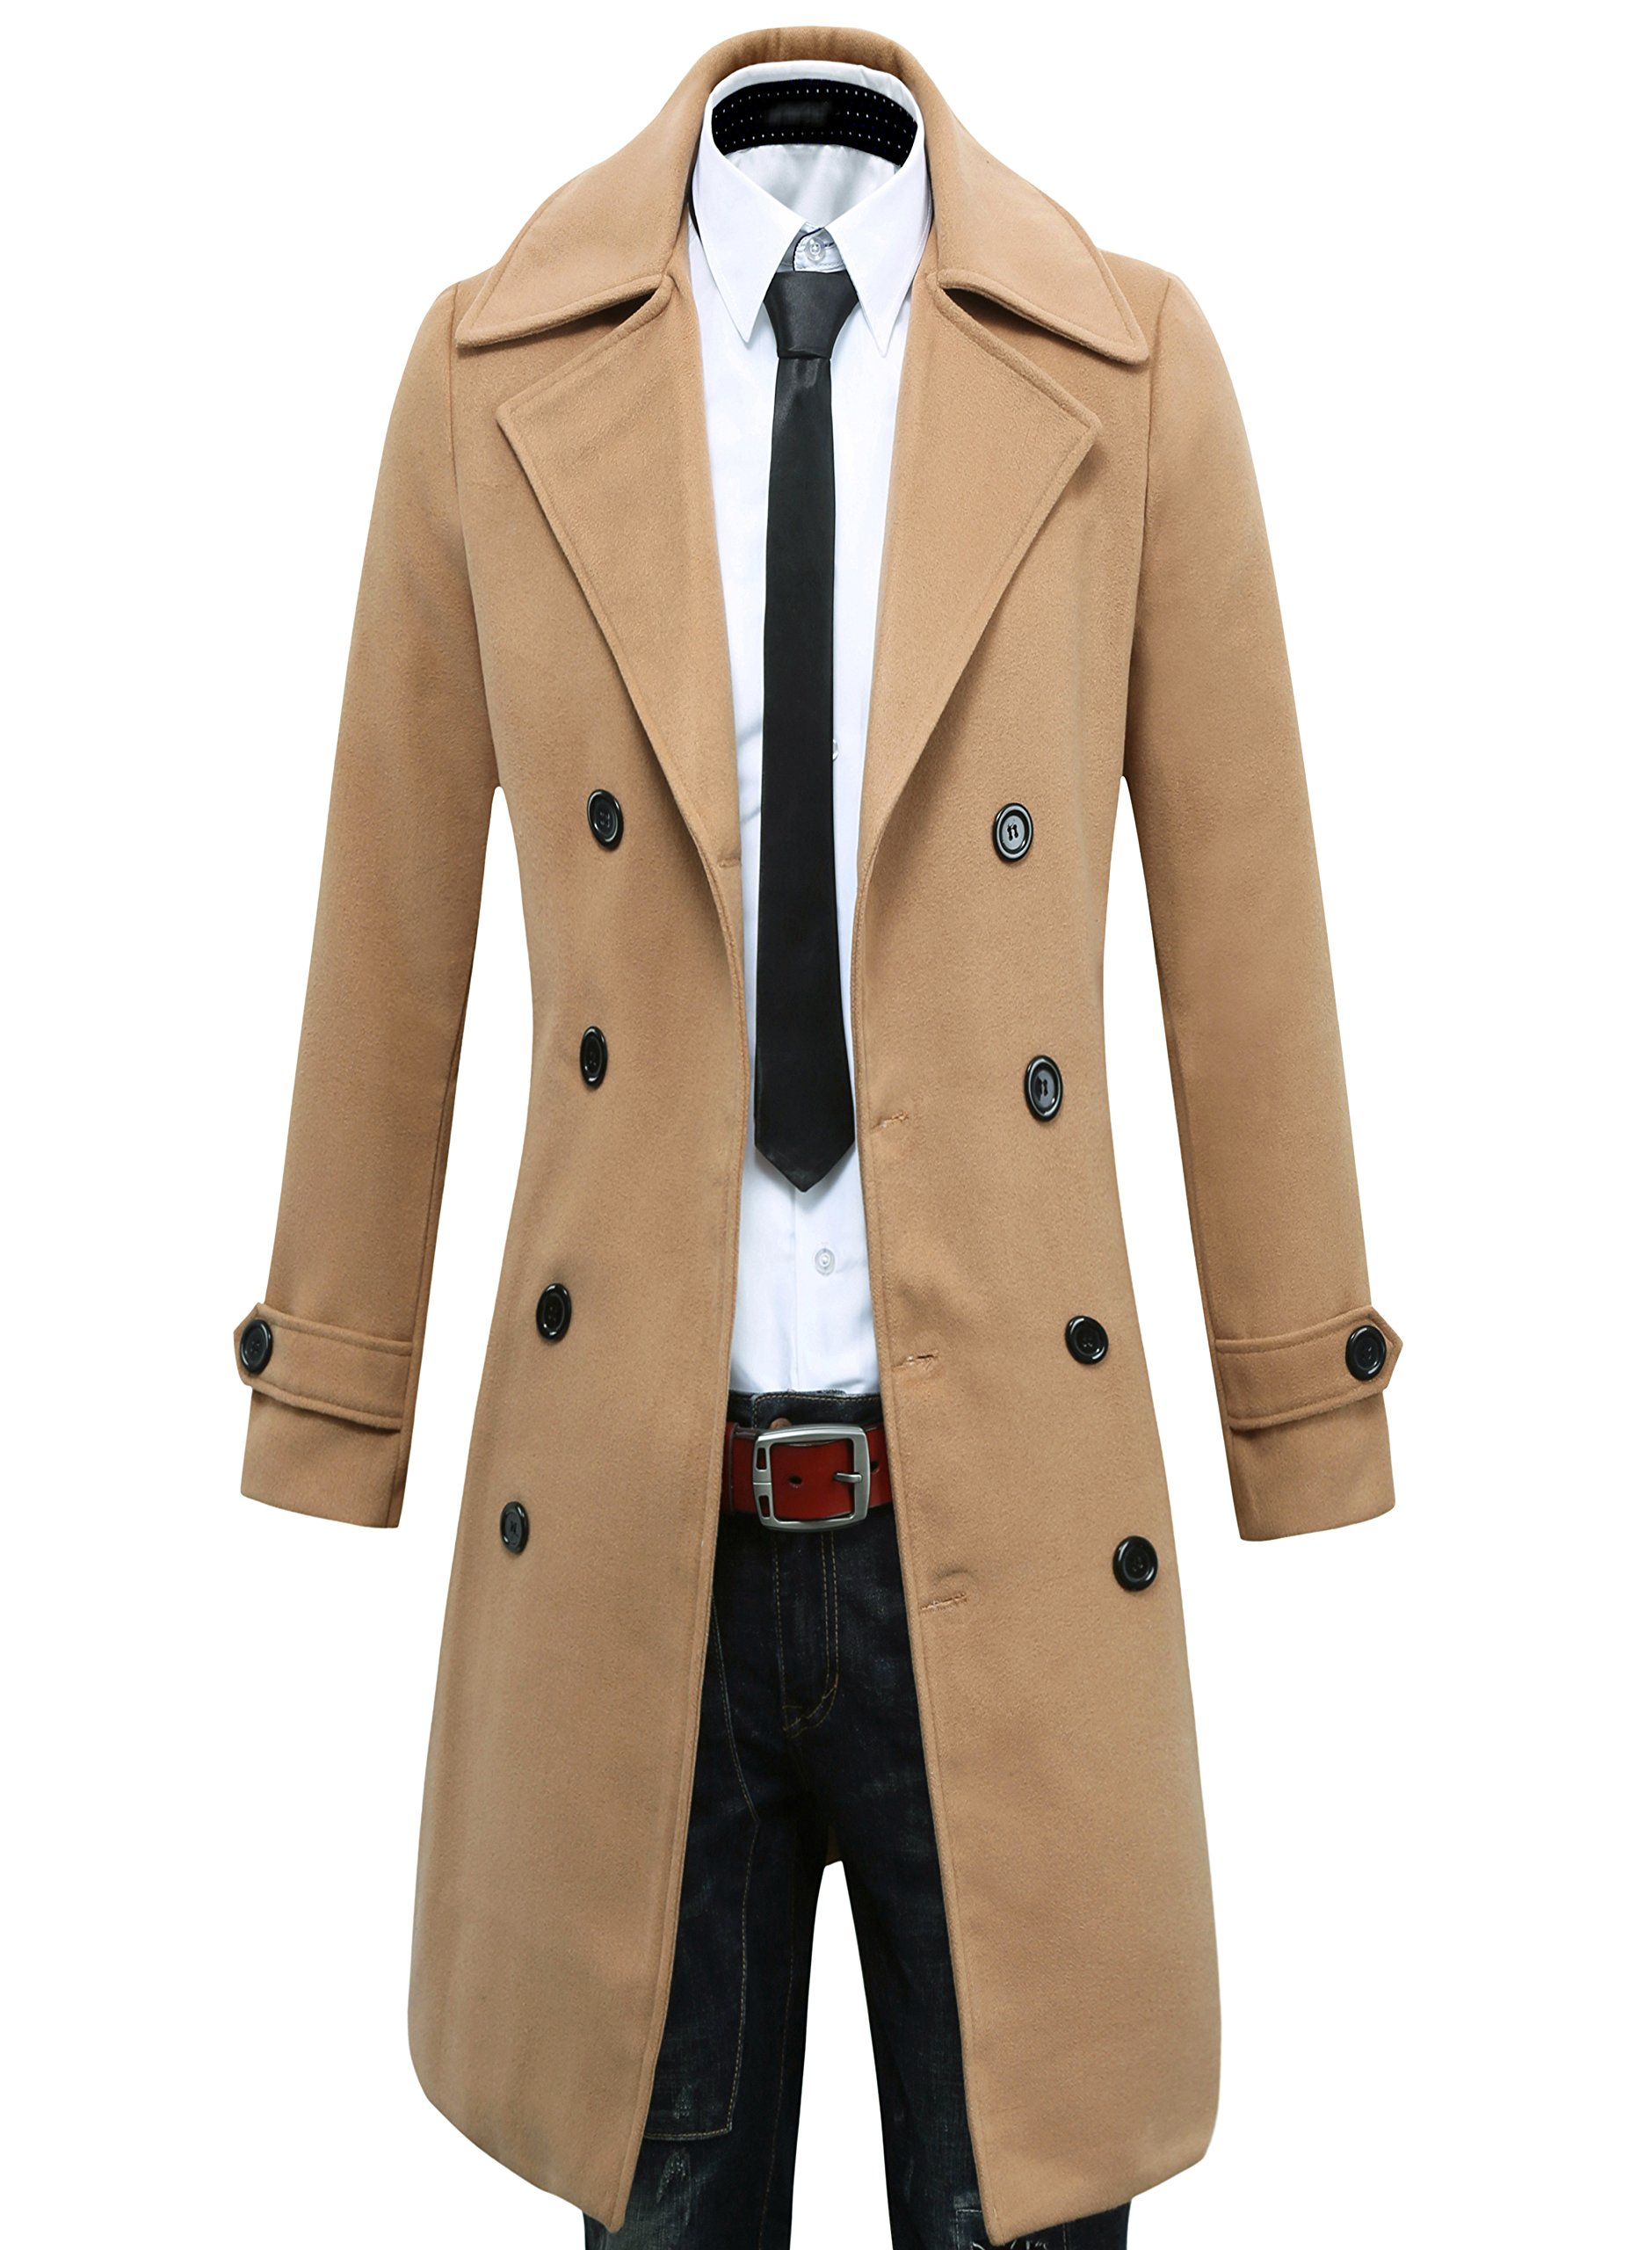 Beninos Men's Trench Coat Winter Long Jacket Double Breasted Overcoat (5625 Camel, US:S/Asia L) by Beninos